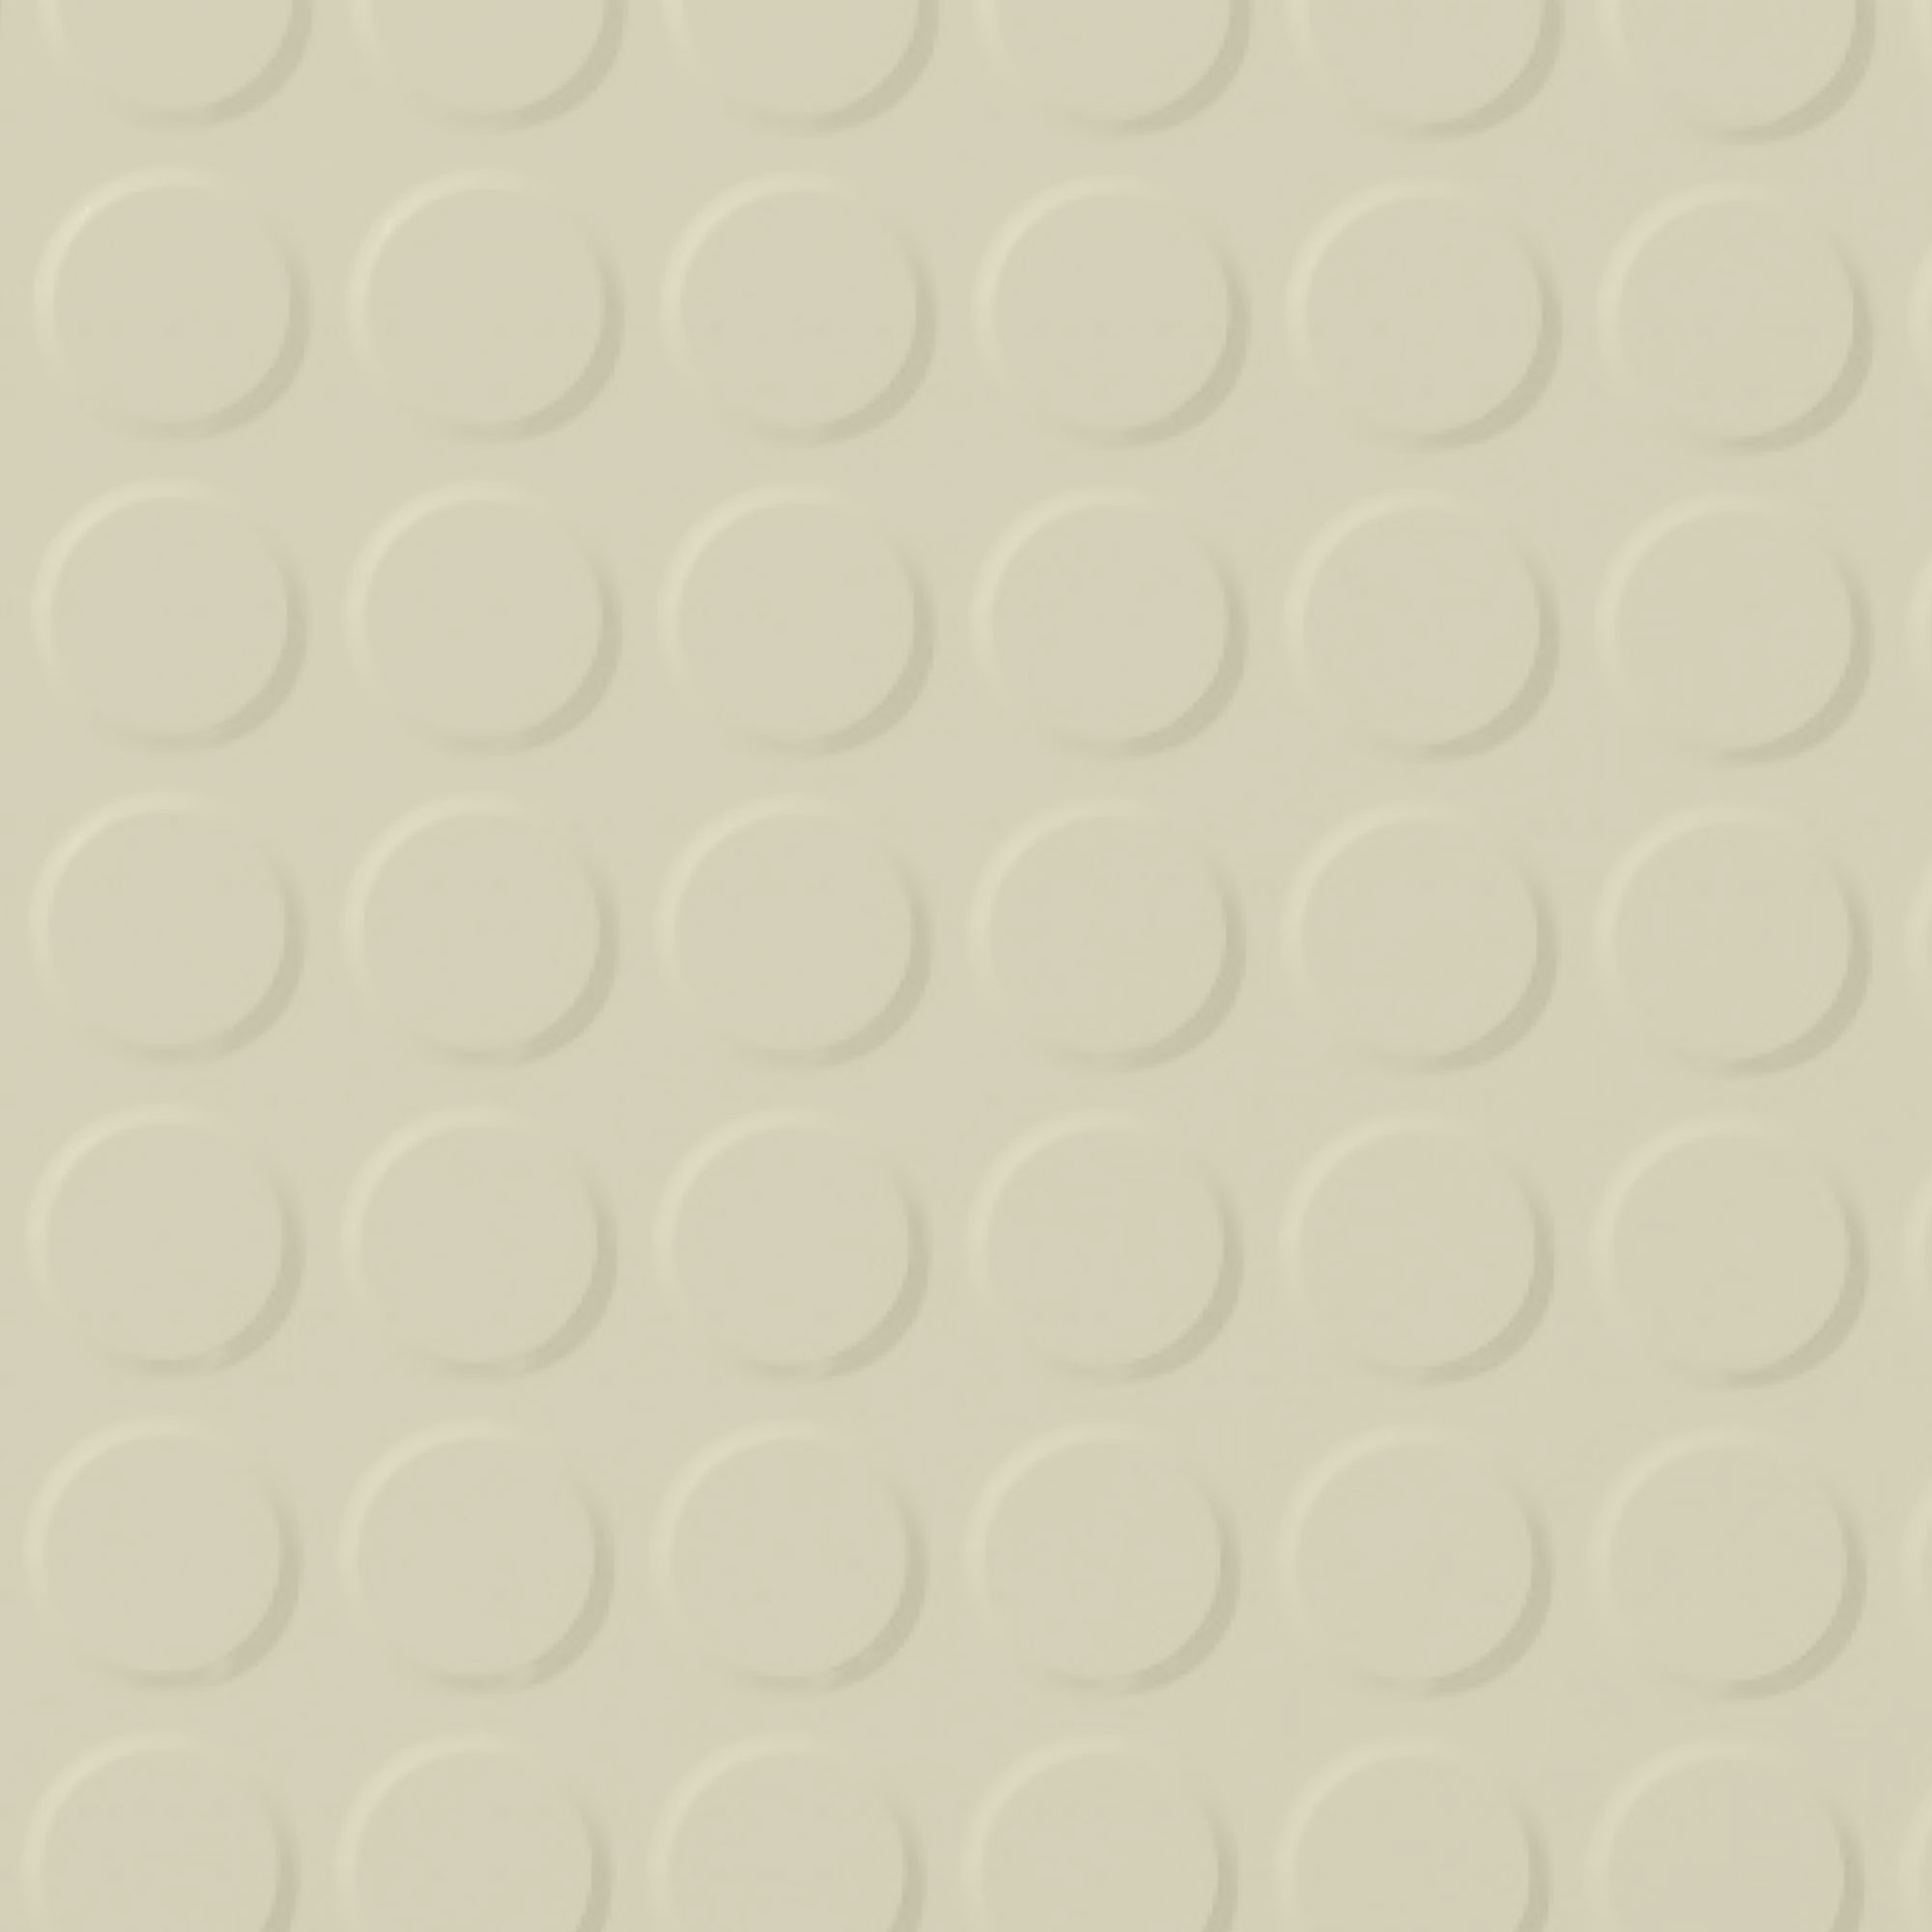 Roppe Rubber Tile 900 - Vantage Raised Circular Design (996) Bisque 131